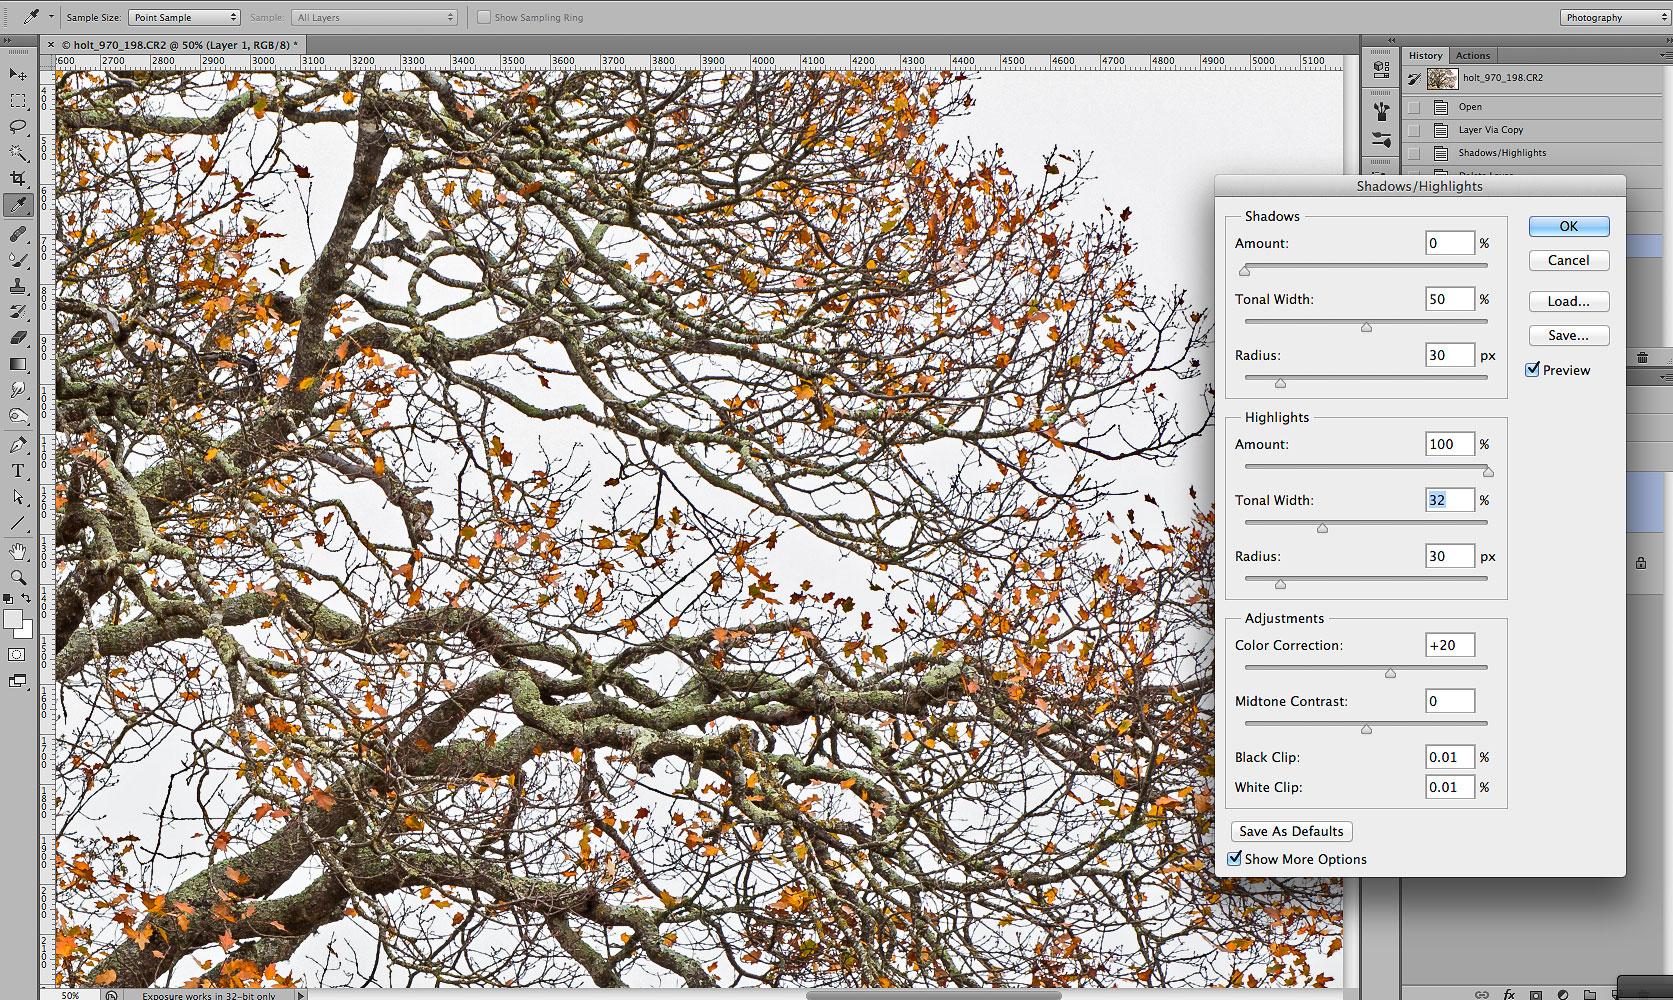 Screenshot - highlight recovery, oak branches, file 970